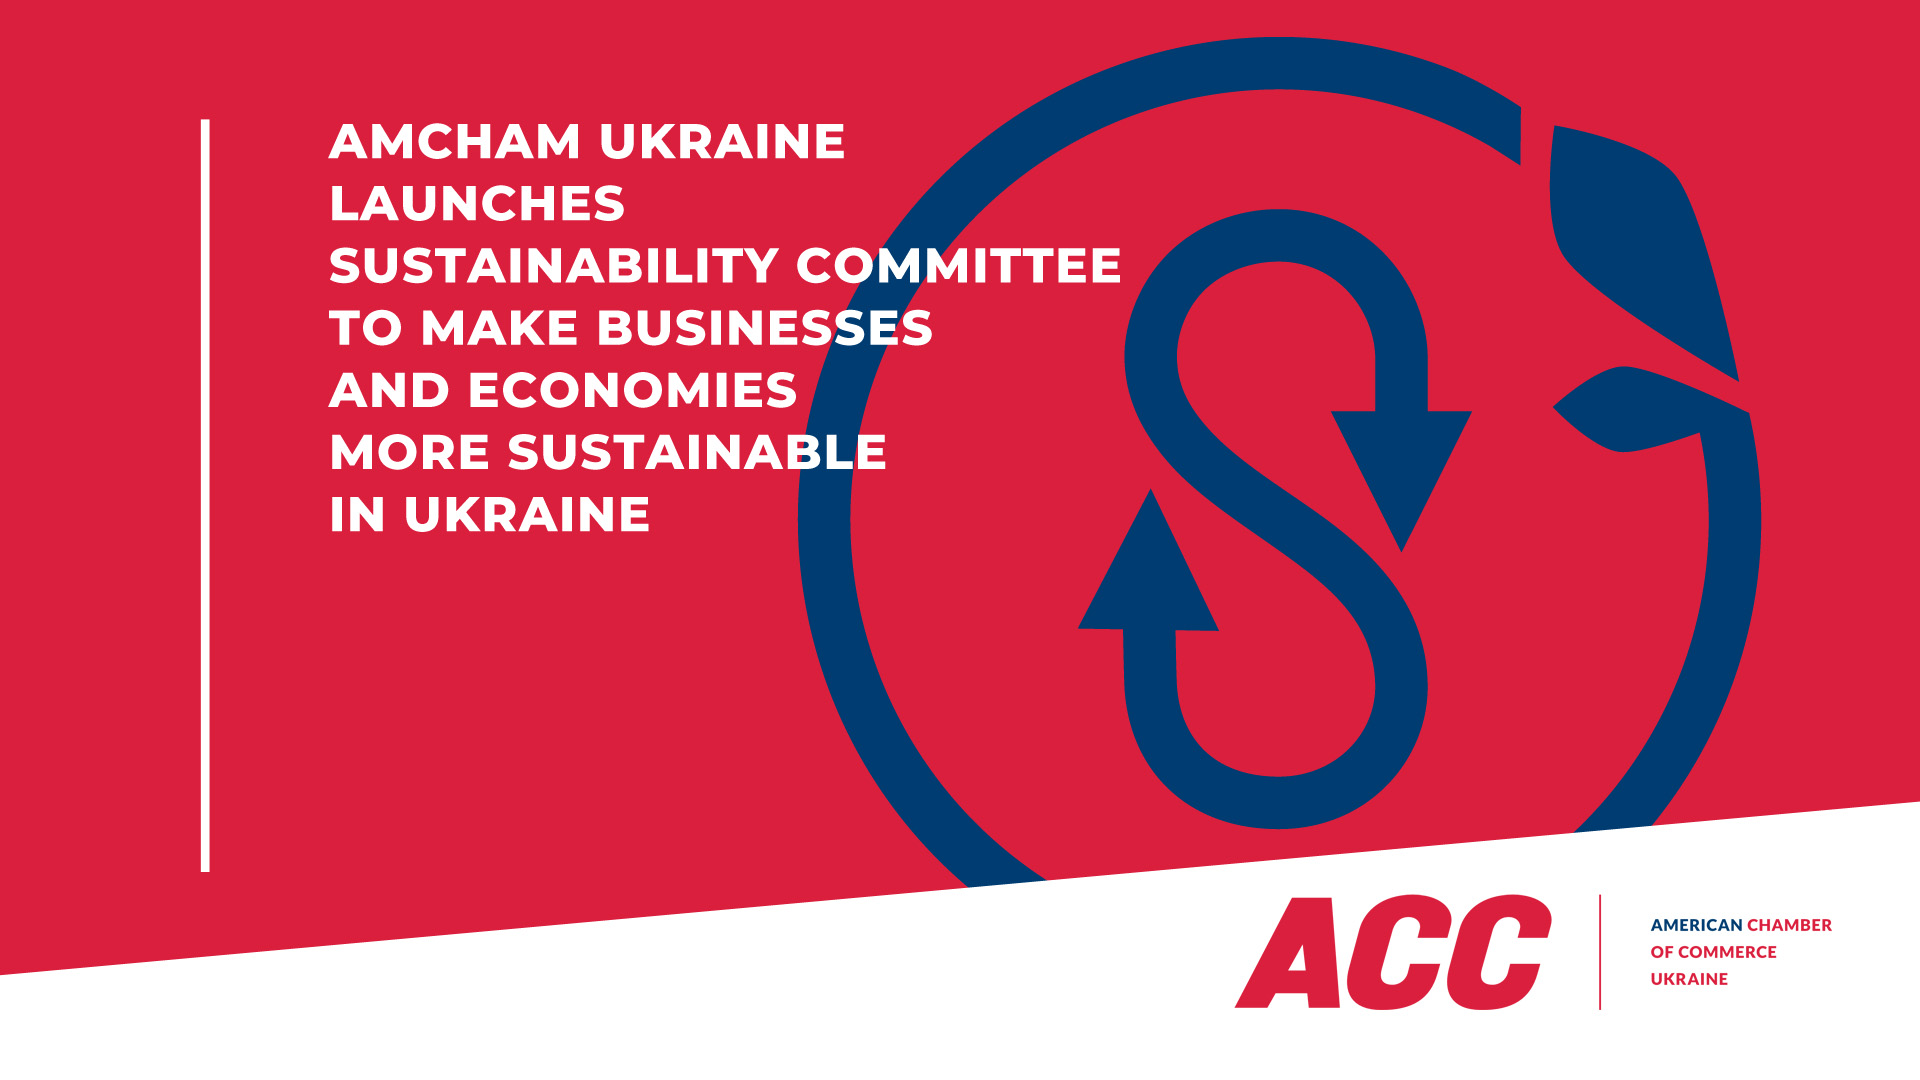 AmCham Ukraine Launches Sustainability Committee to Make Businesses and Economies More Sustainable in Ukraine